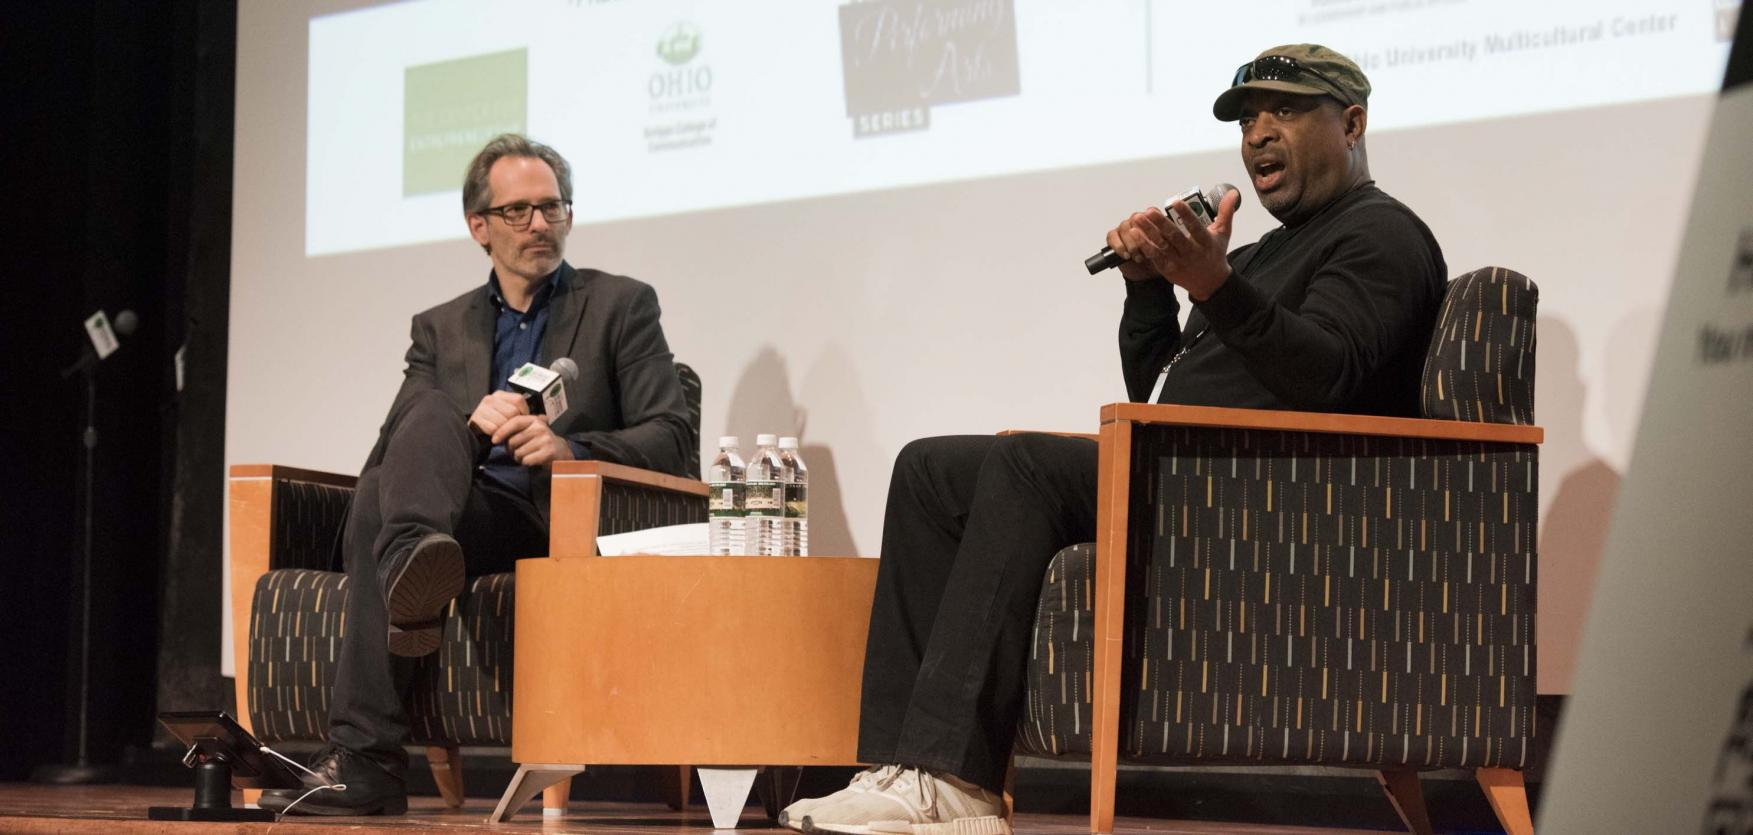 Chuck D of Public Enemy in conversation with professor Josh Antonuccio during the 2019 Music Industry Summit.